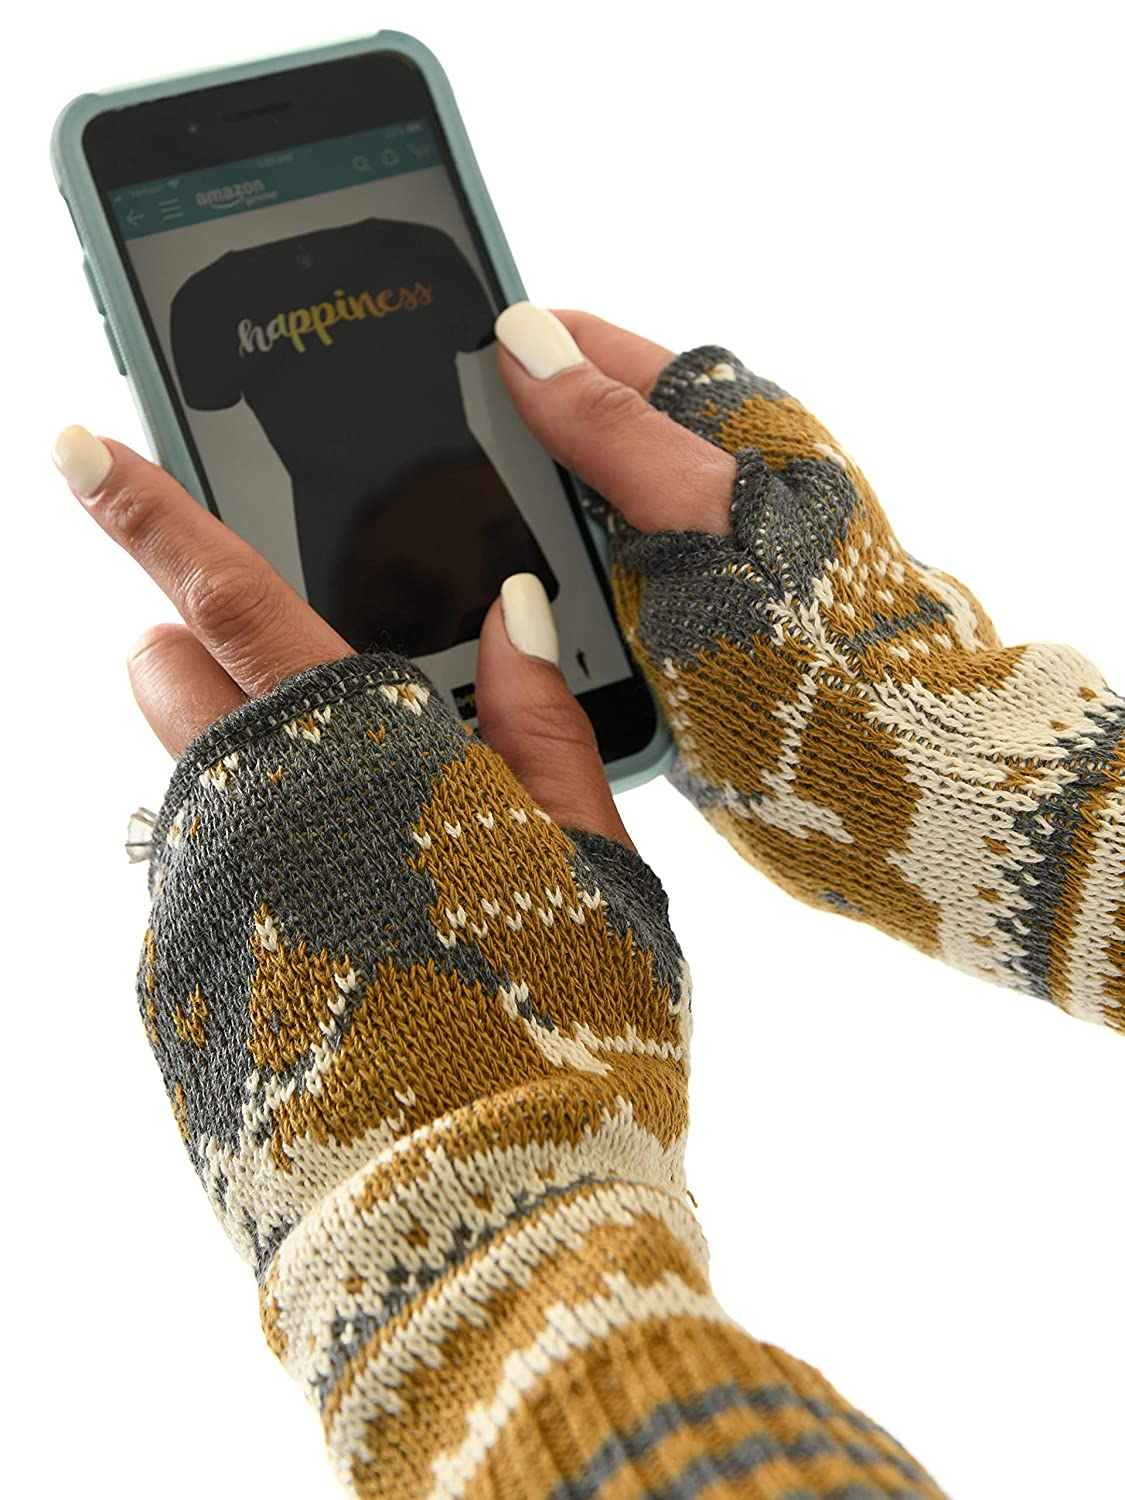 Green 3 Womens Recycled Cotton Hand Warmer Fingerless Gloves One Size